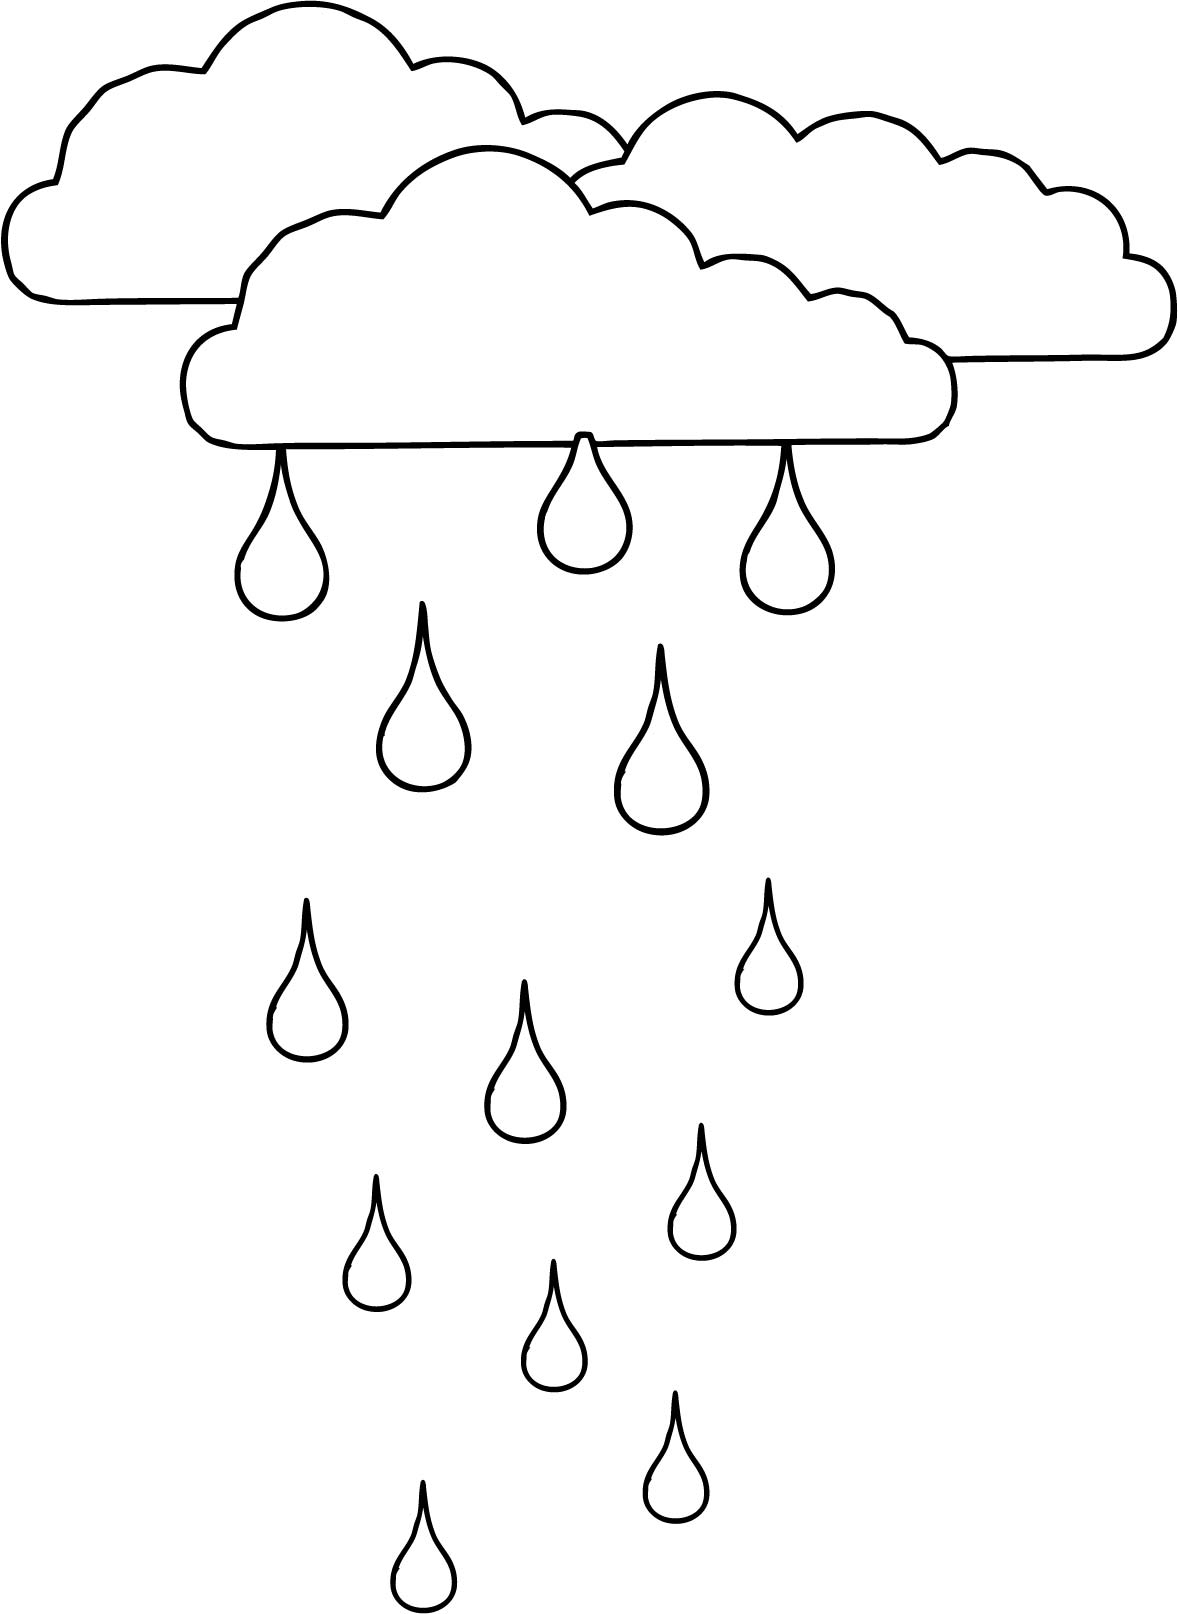 rain drop coloring pages - photo#38